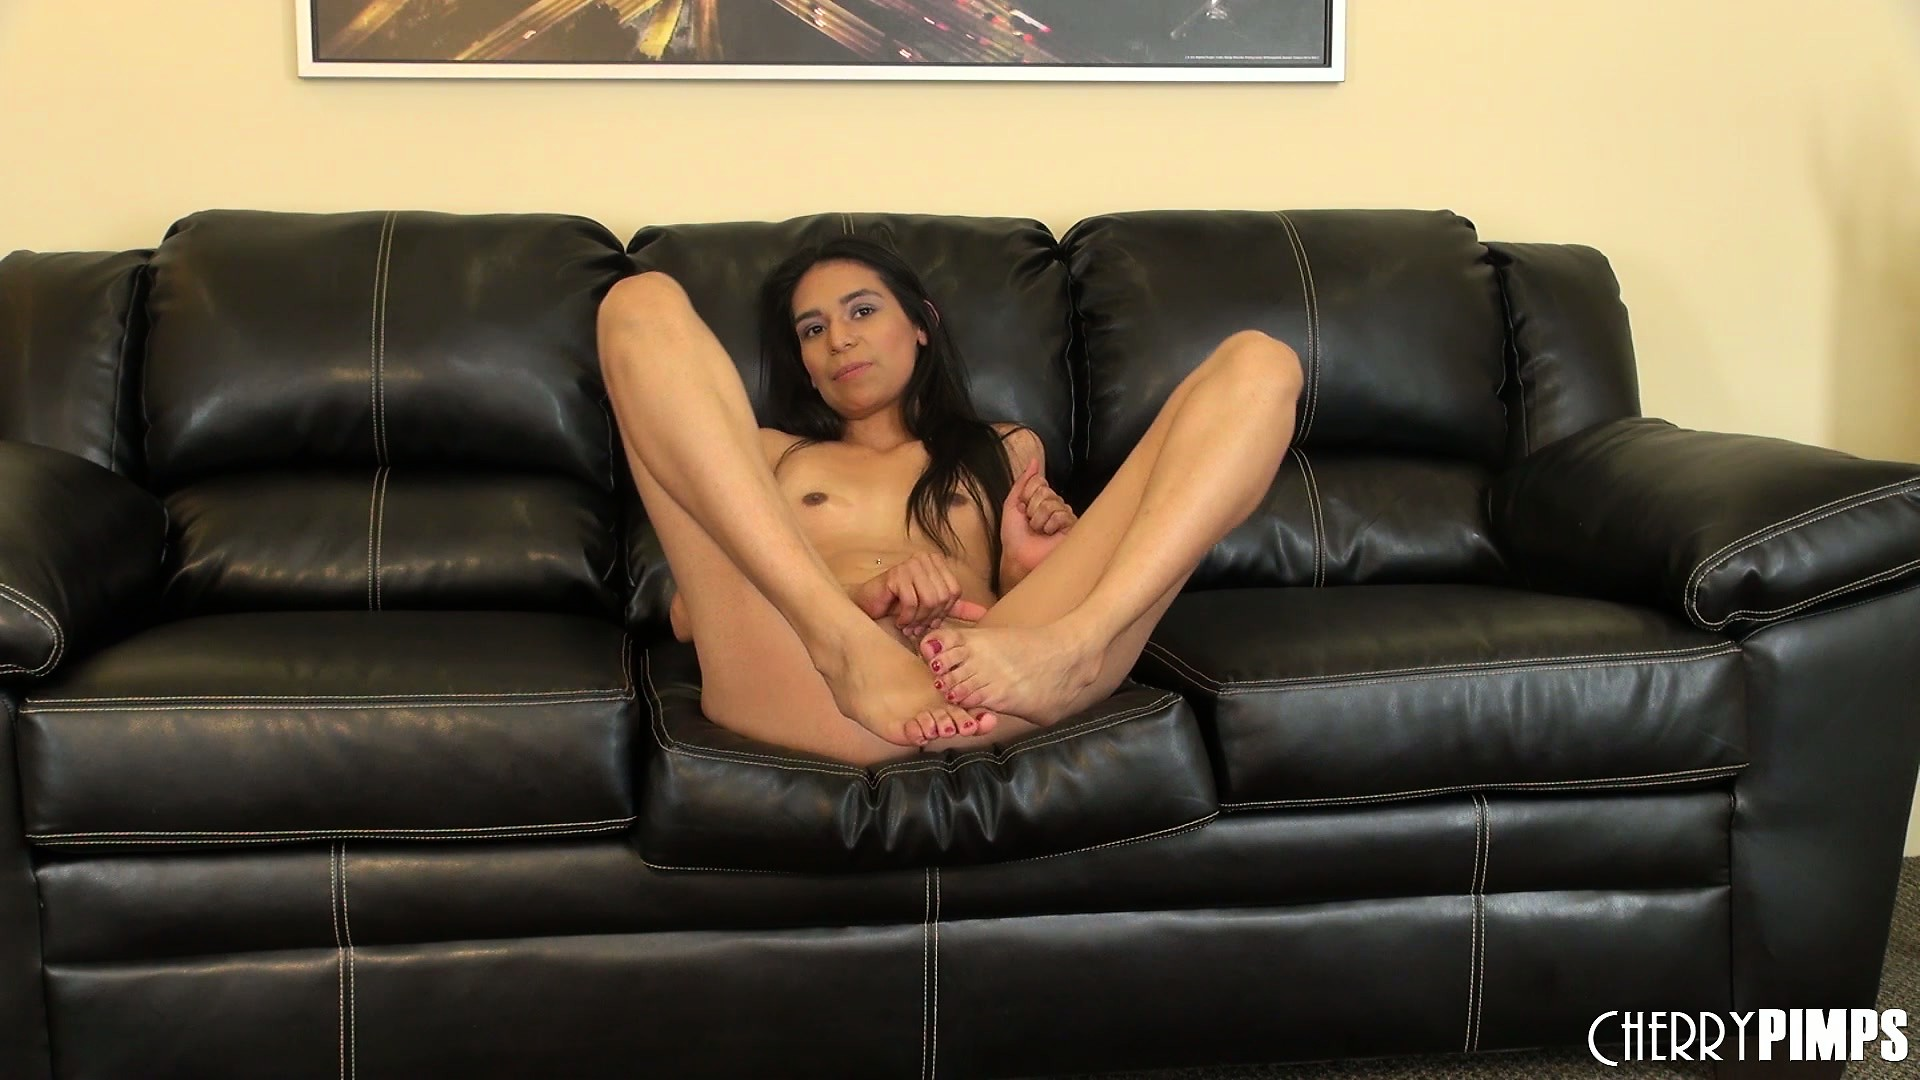 Sex on leather couch